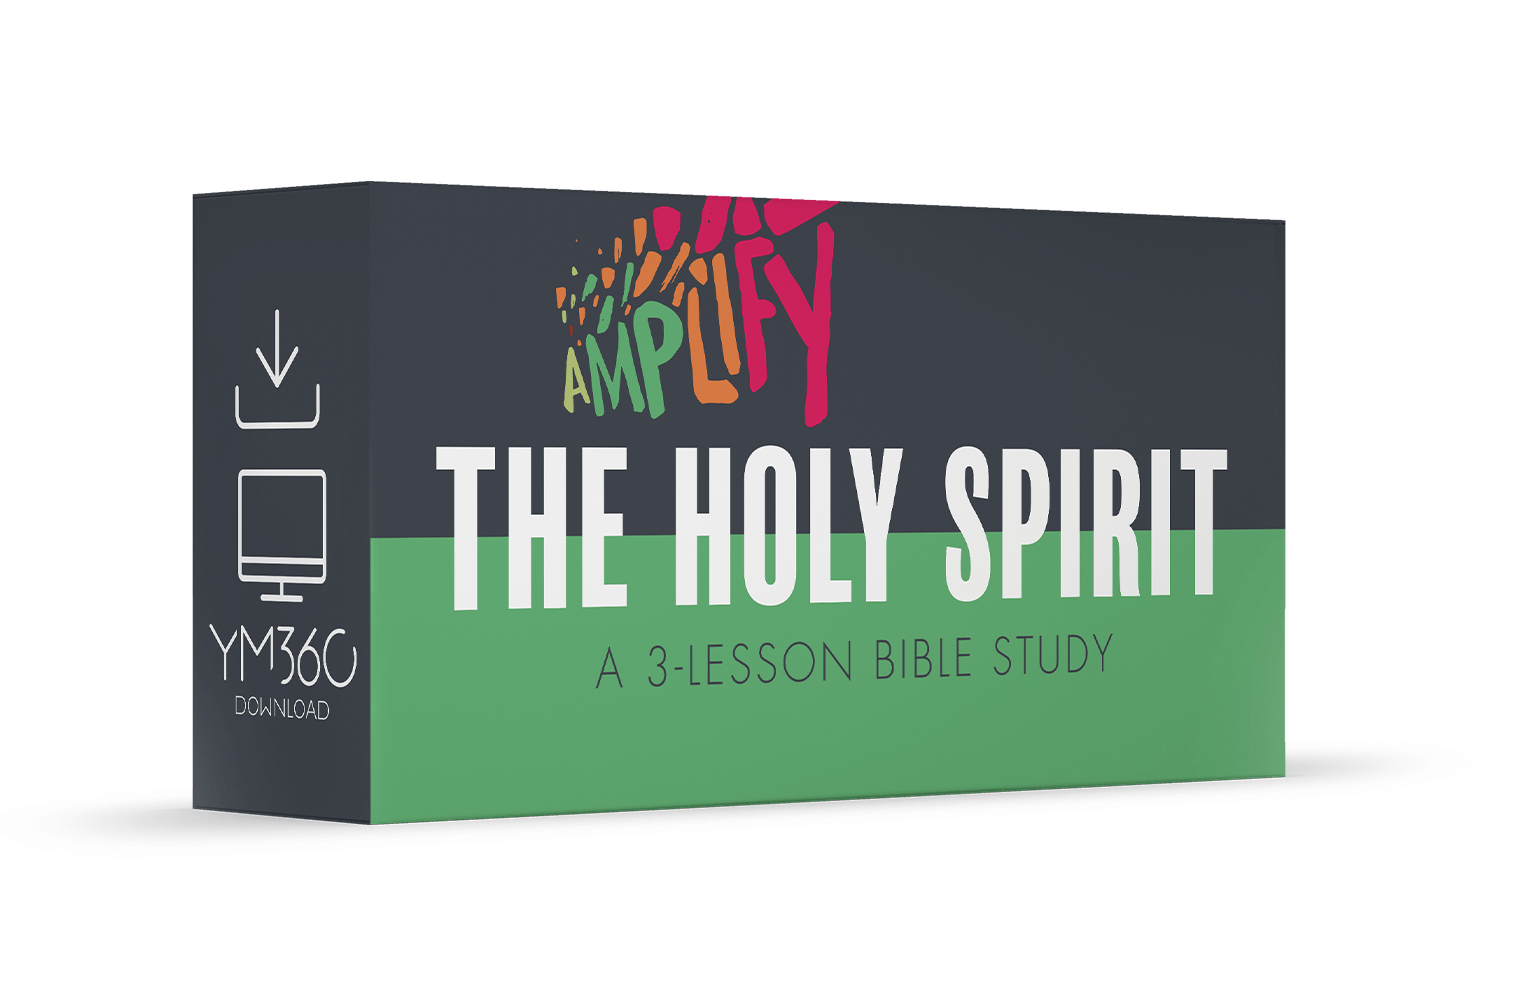 The Holy Spirit: A 3-Lesson Bible Study